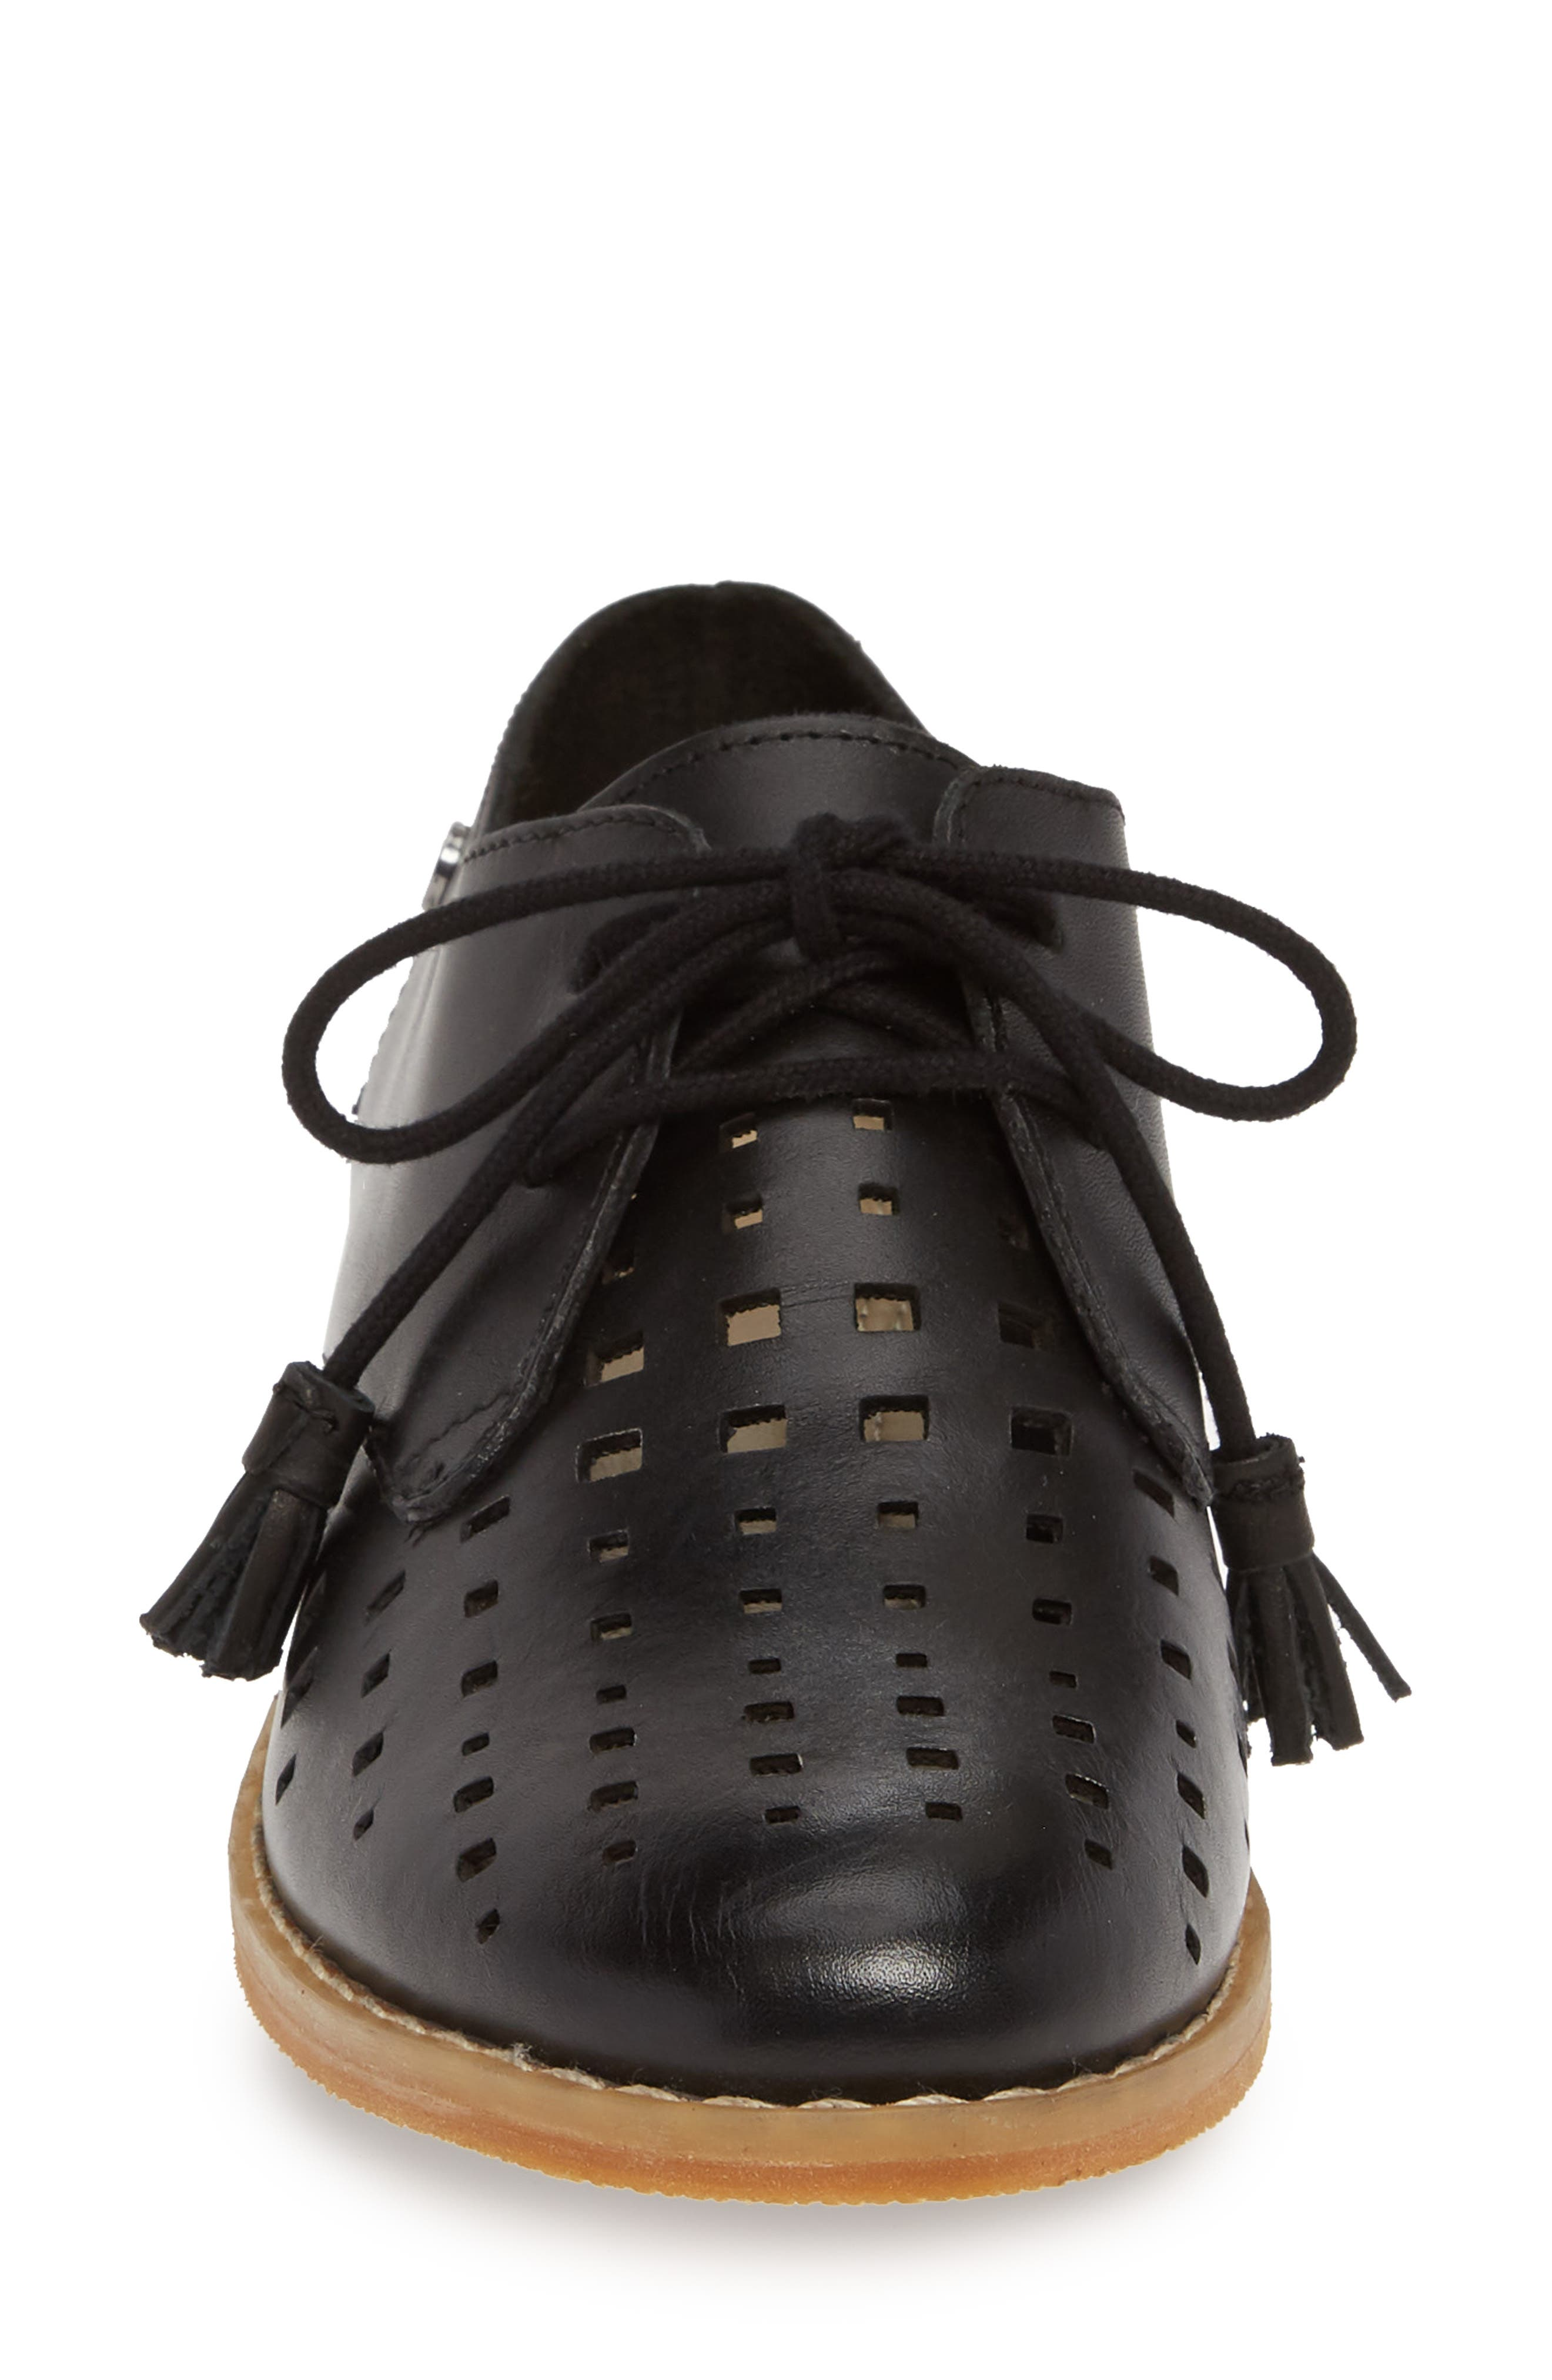 HUSH PUPPIES<SUP>®</SUP>, Chardon Perforated Derby, Alternate thumbnail 4, color, BLACK LEATHER